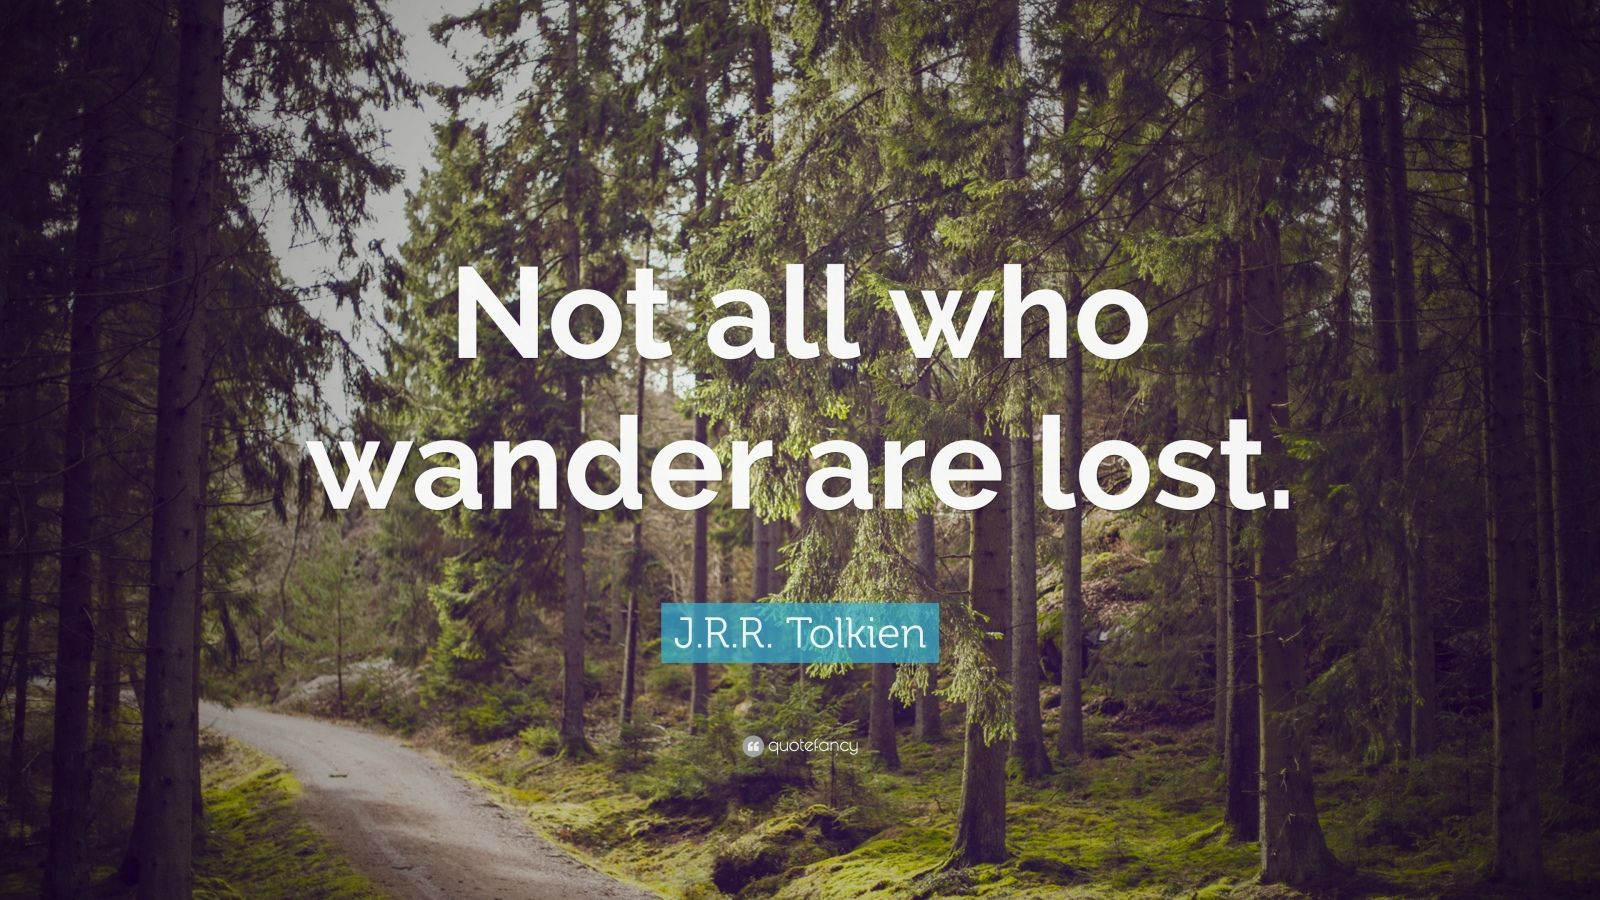 Desktop Wallpaper Tolkien Quote J R R Tolkien Quote Not All Who Wander Are Lost 21